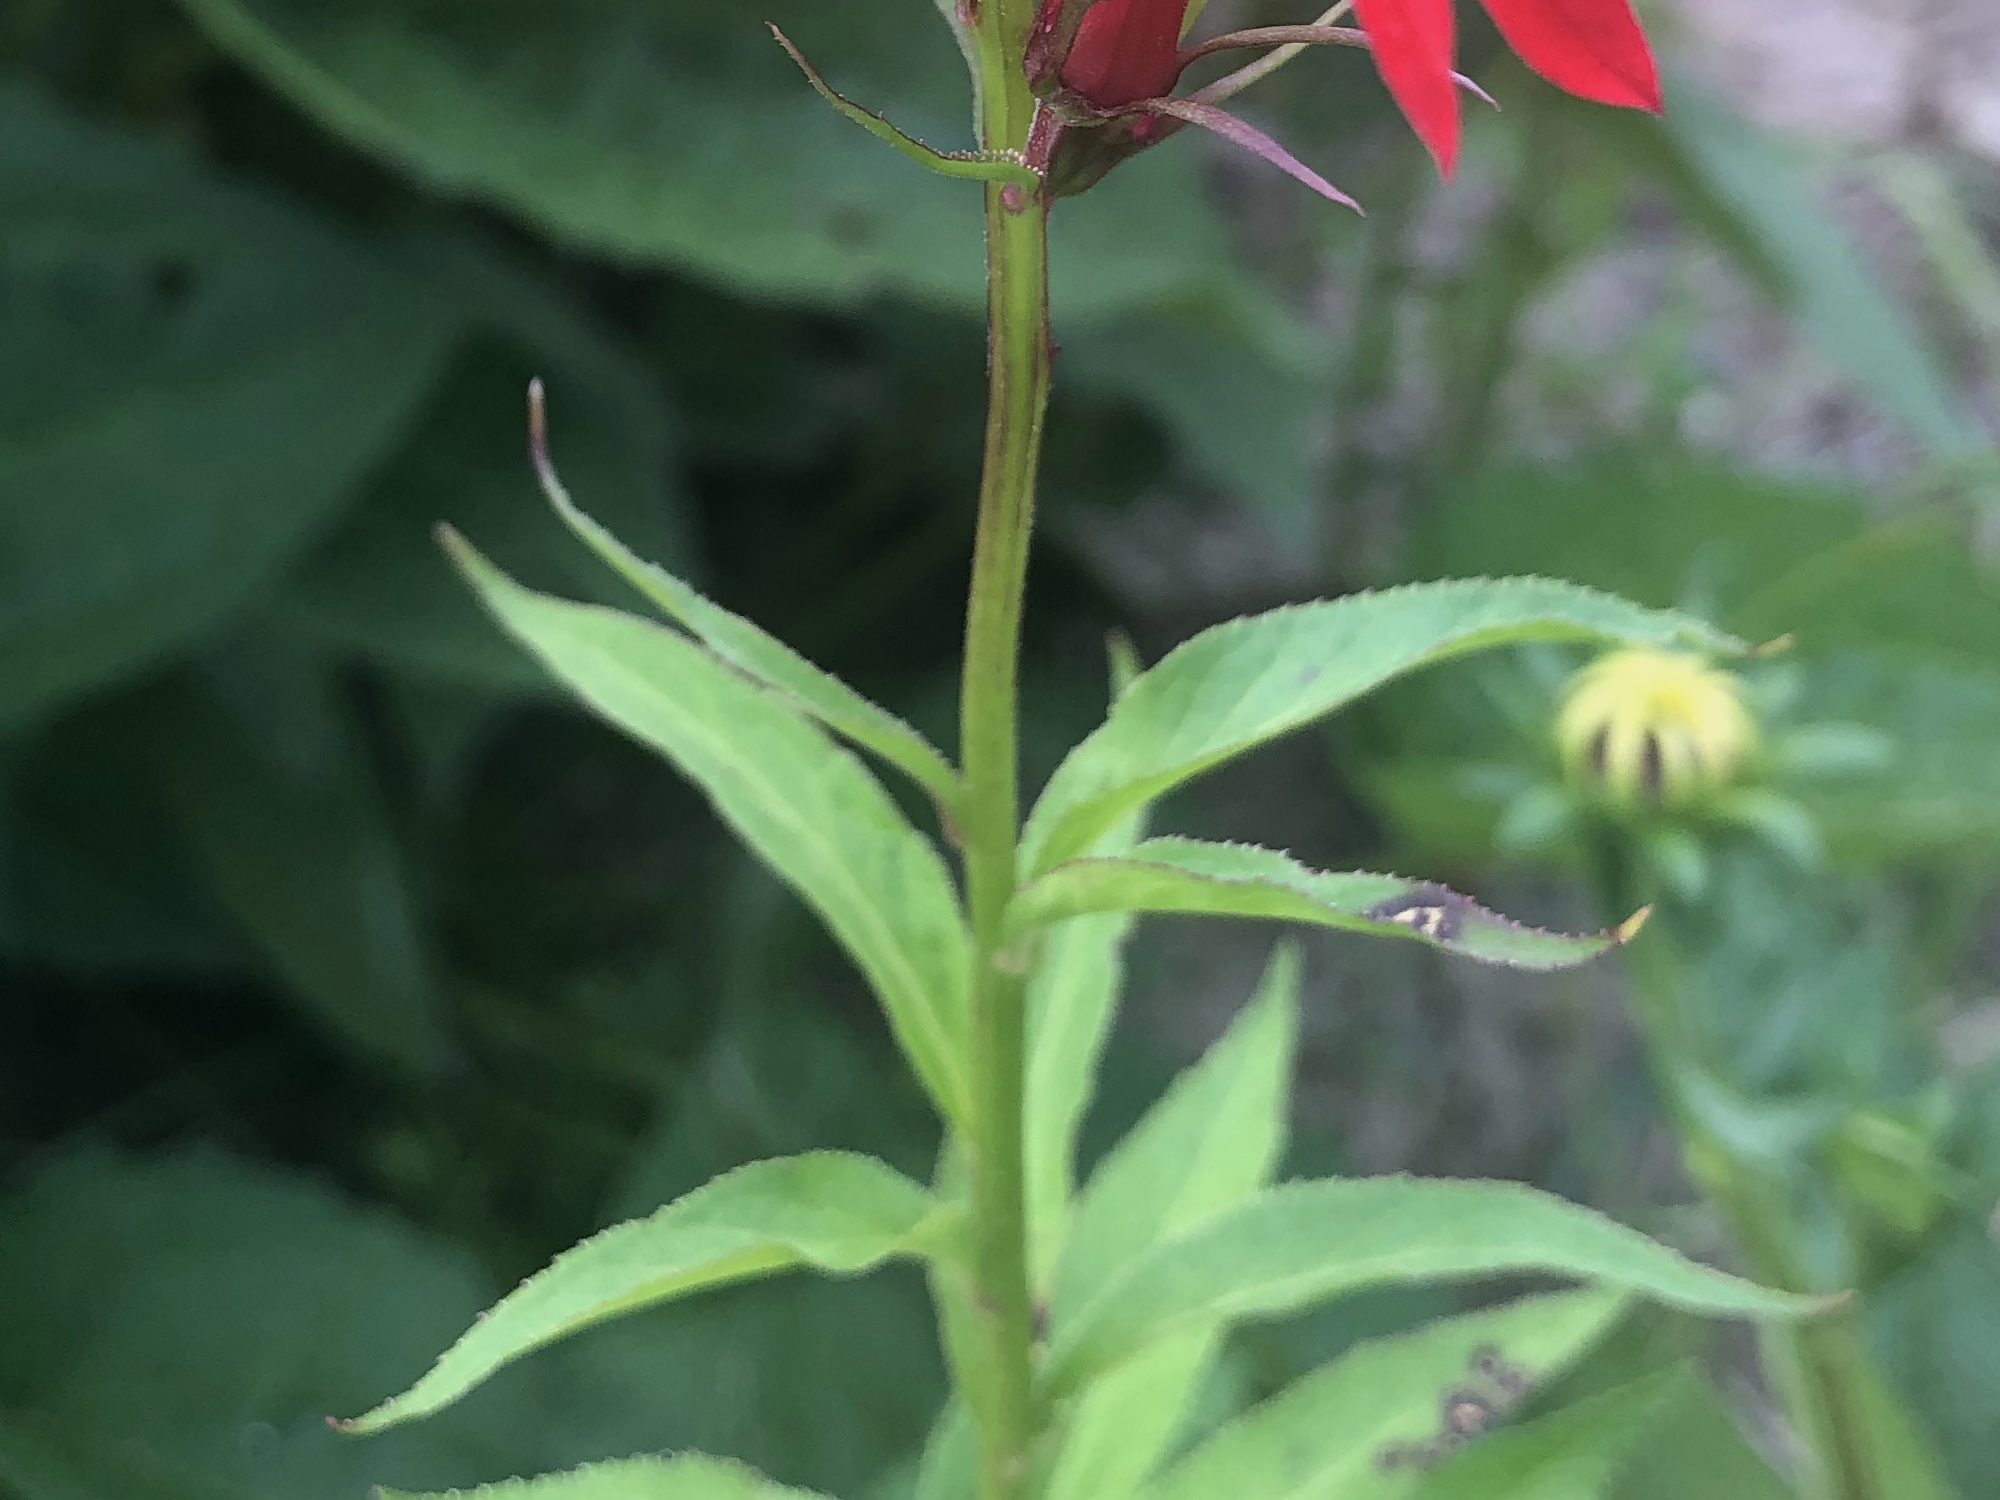 Cardinal Flower leaves and stem.